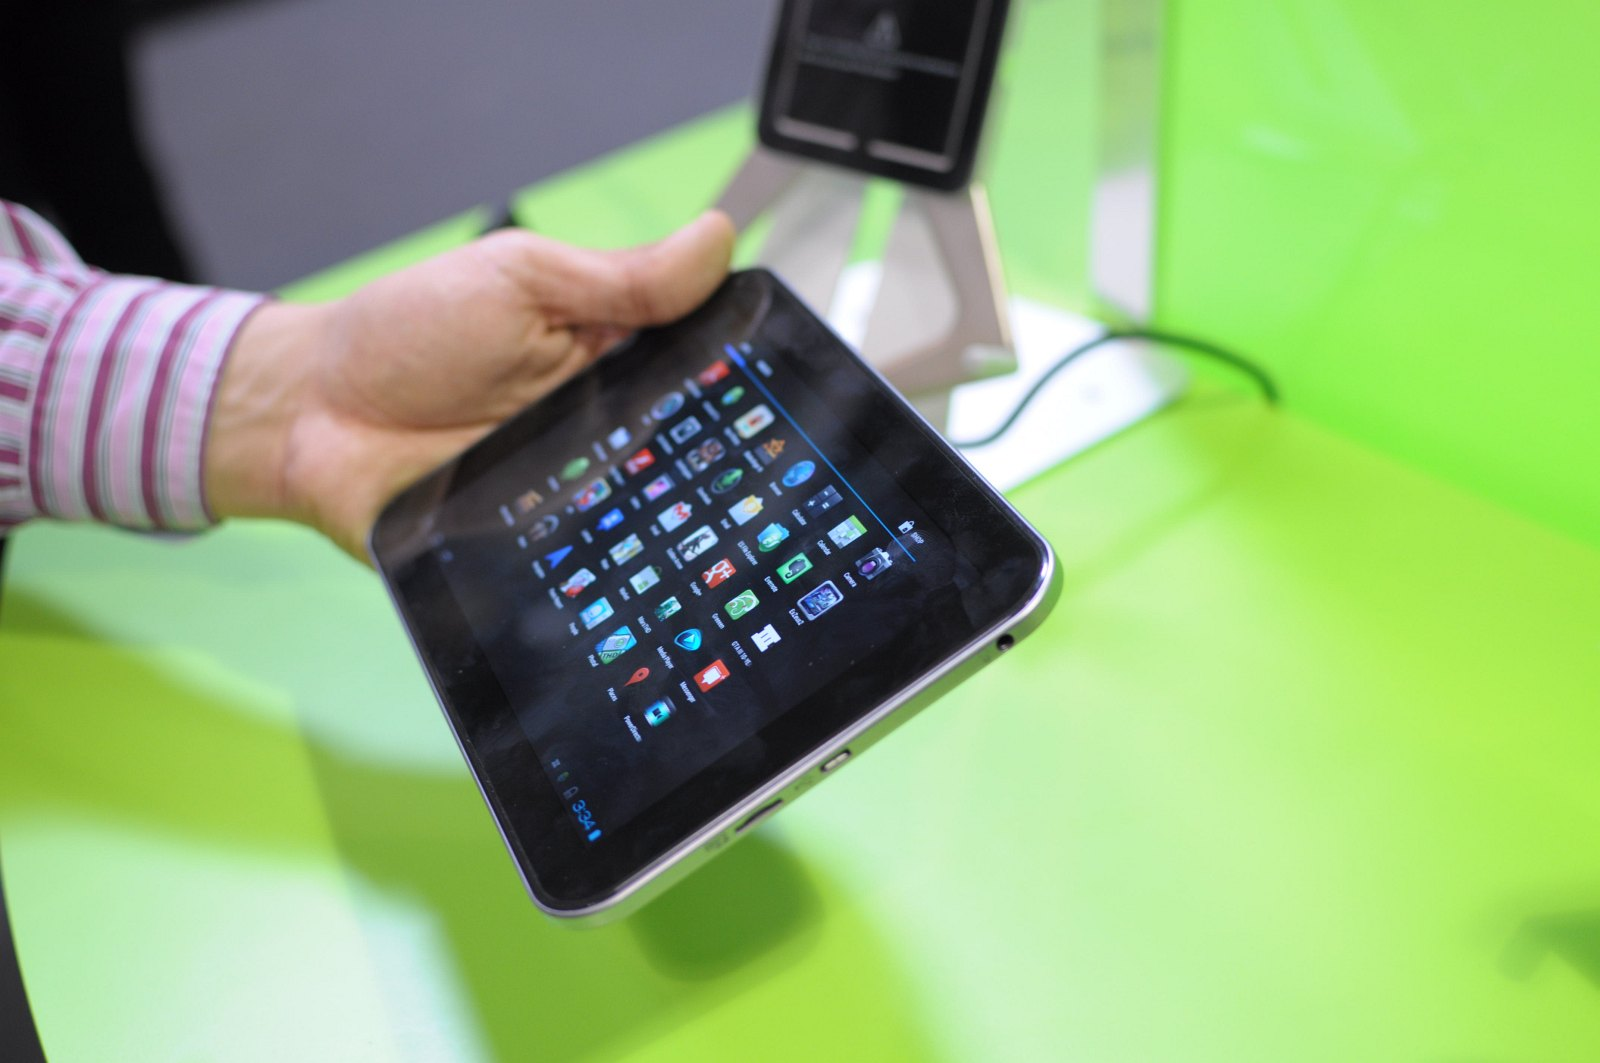 Hands on Toshiba AT270: Kleines Android-Tablet mit Amoled-Display und Tegra 3 - Toshiba AT270